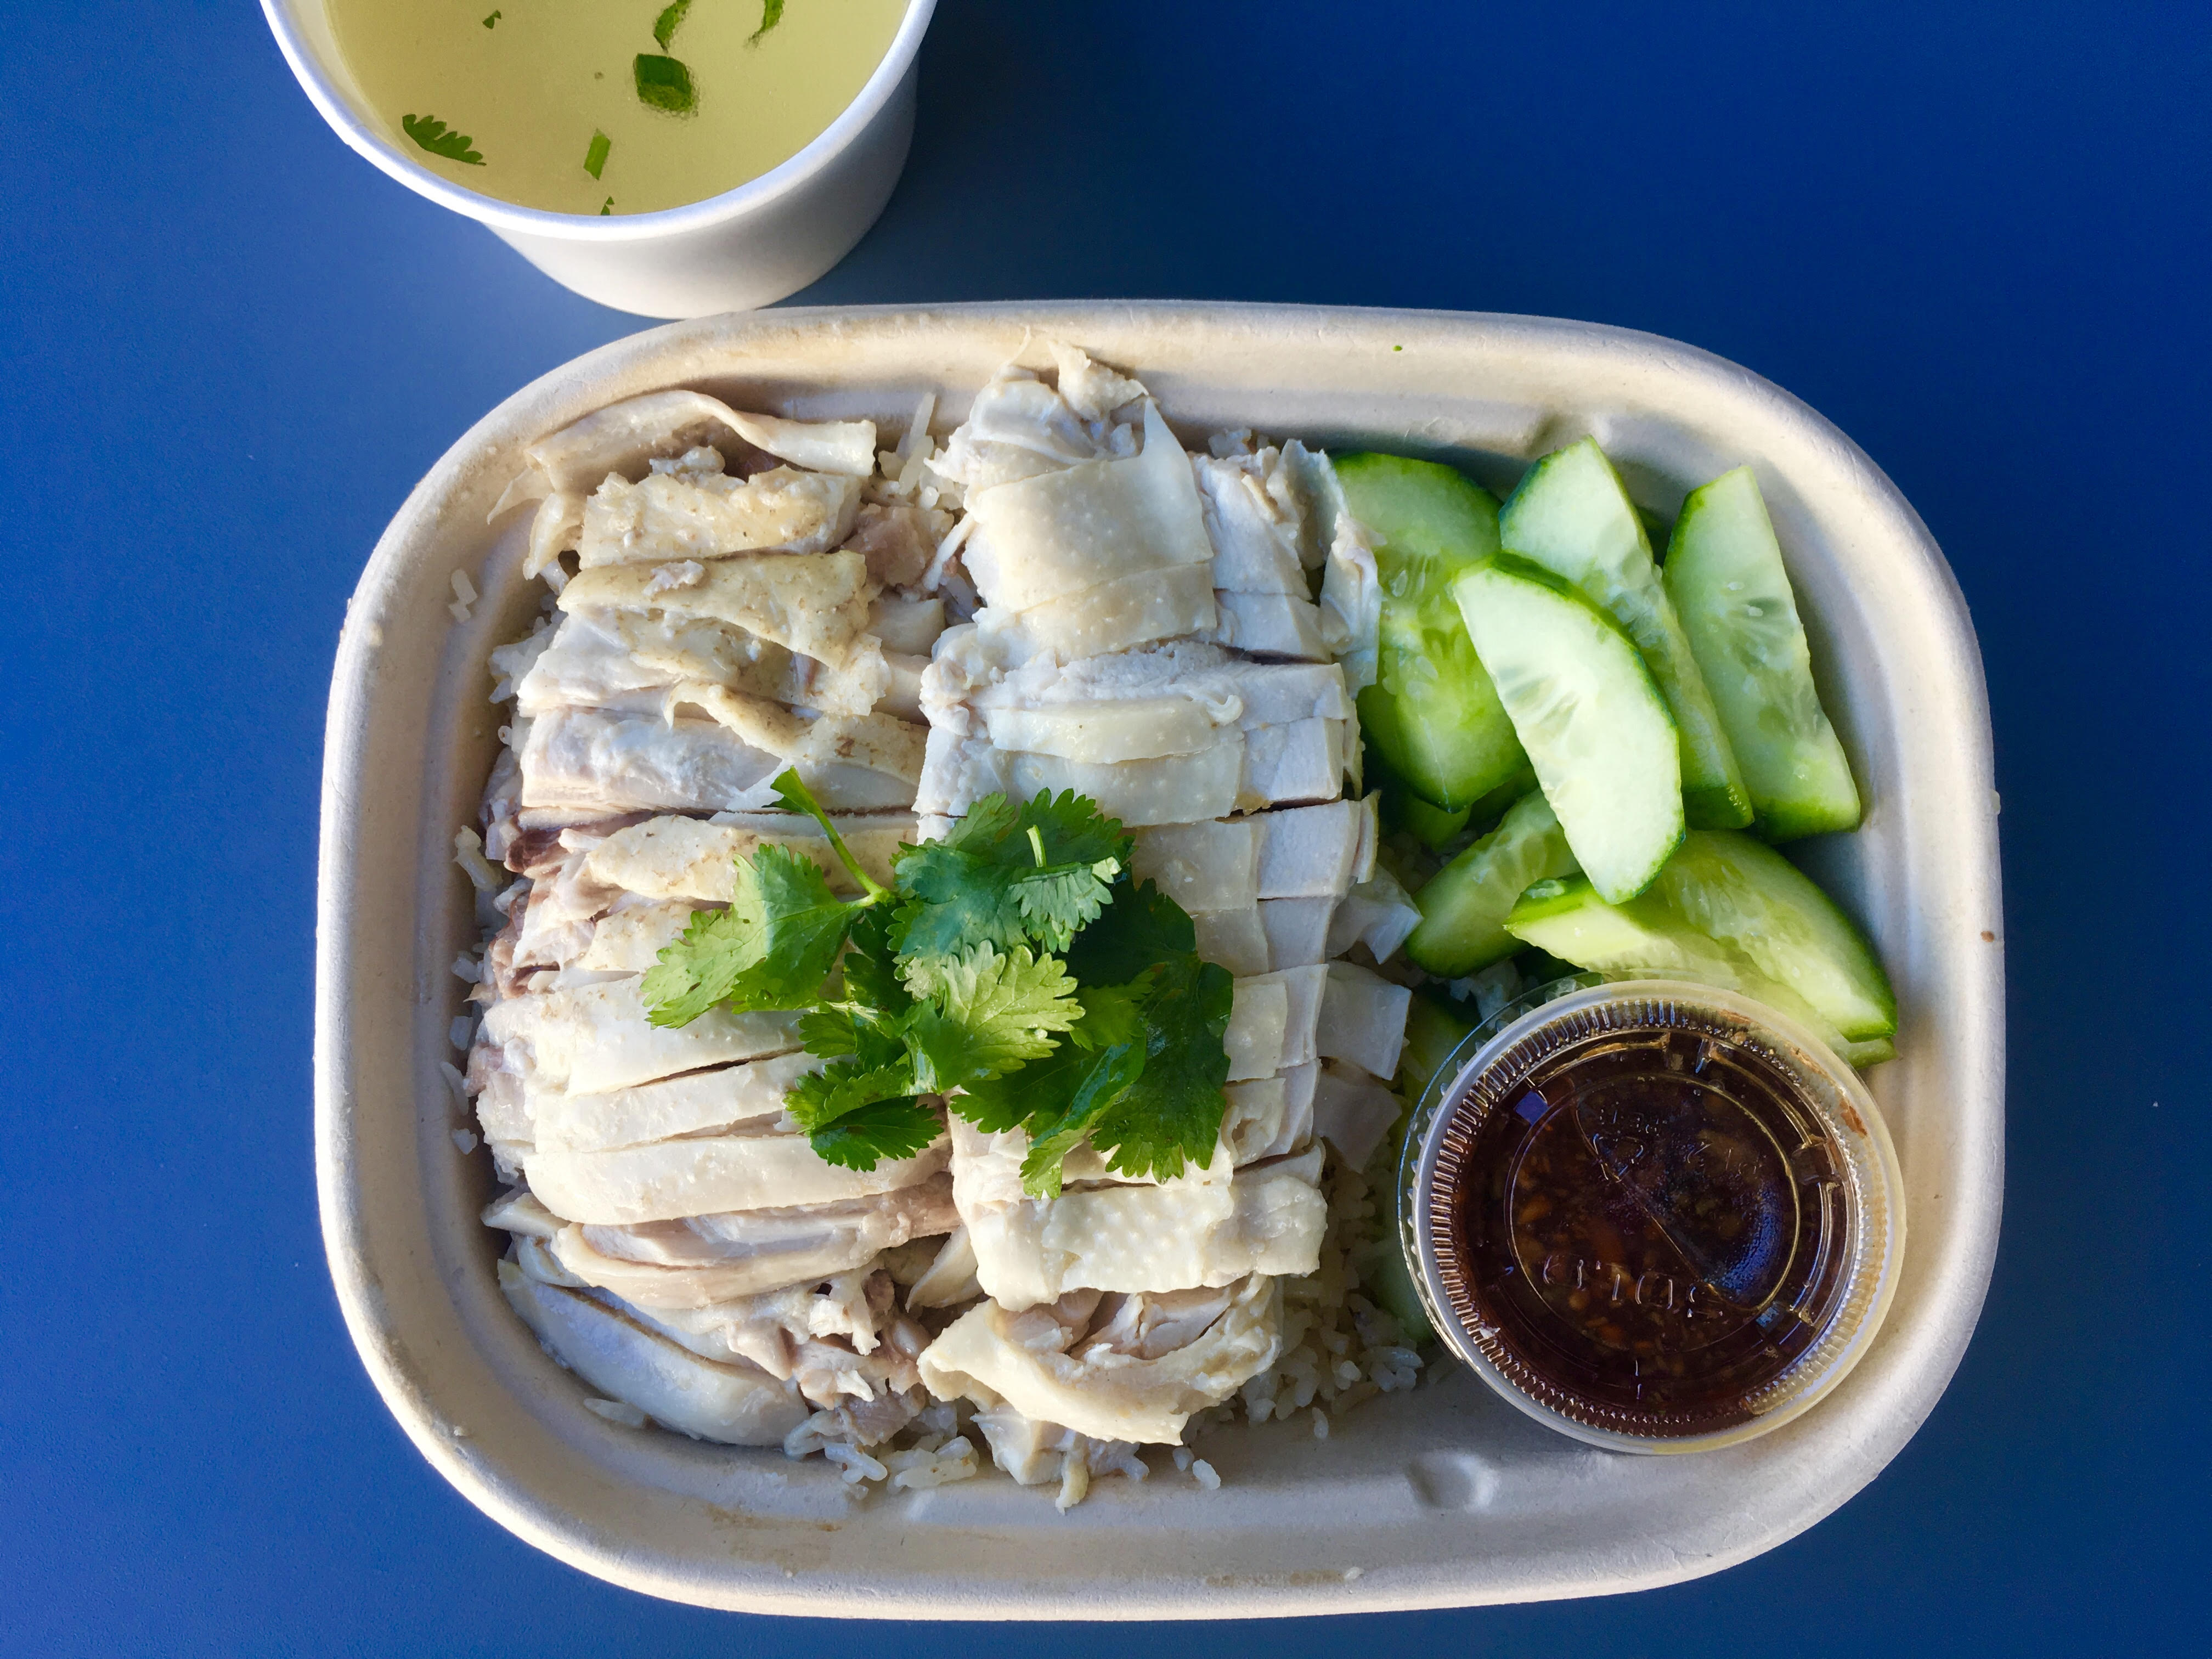 The khao mun gai at Rooster and Rice